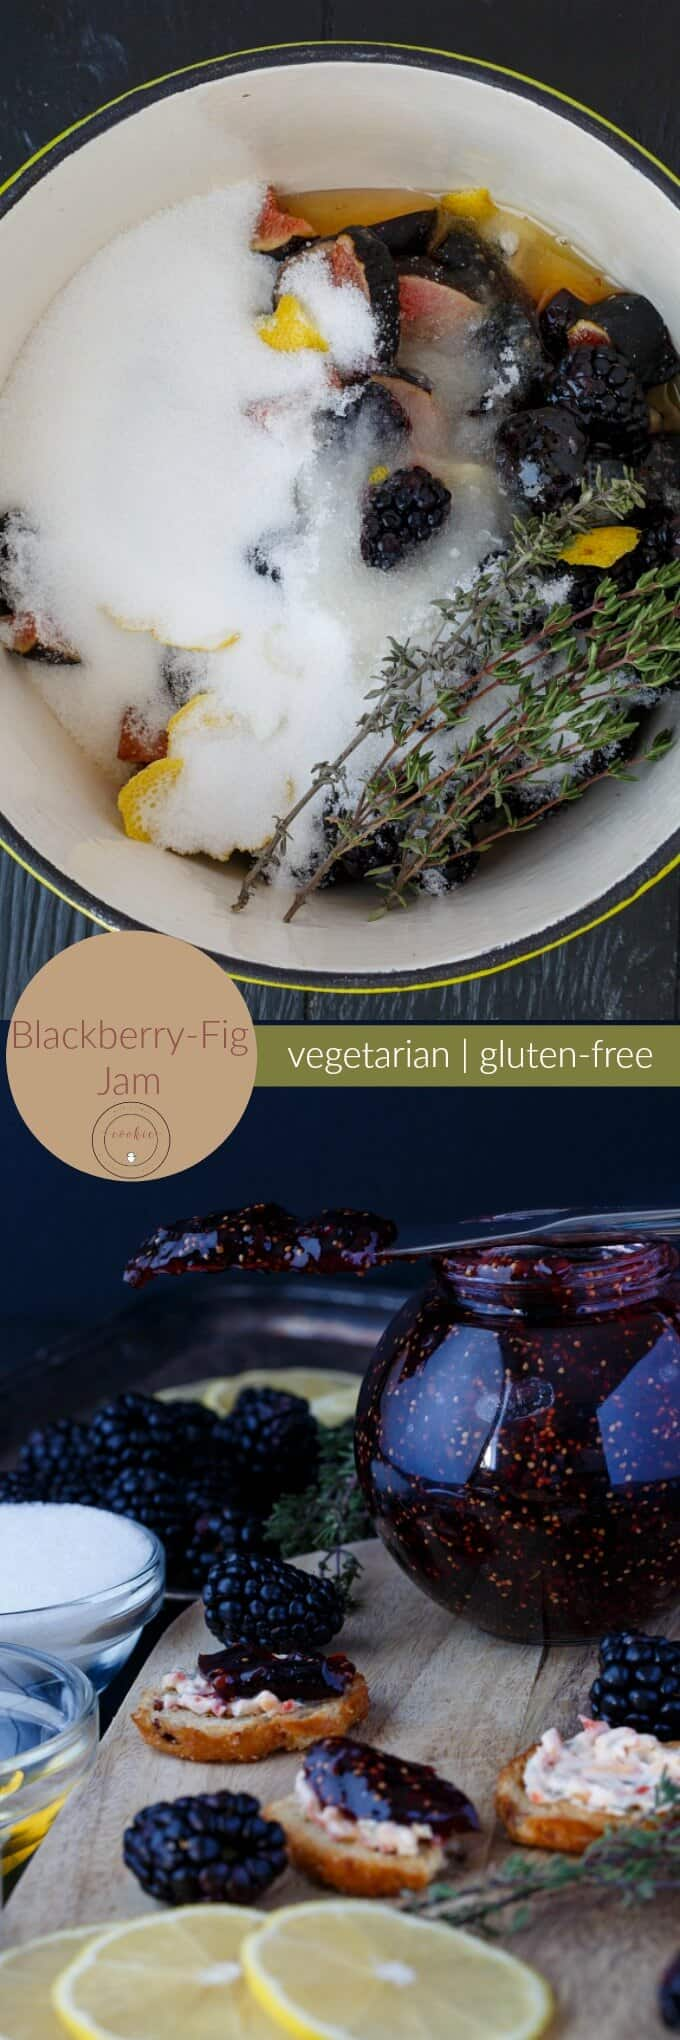 Blackberry-Fig Jam